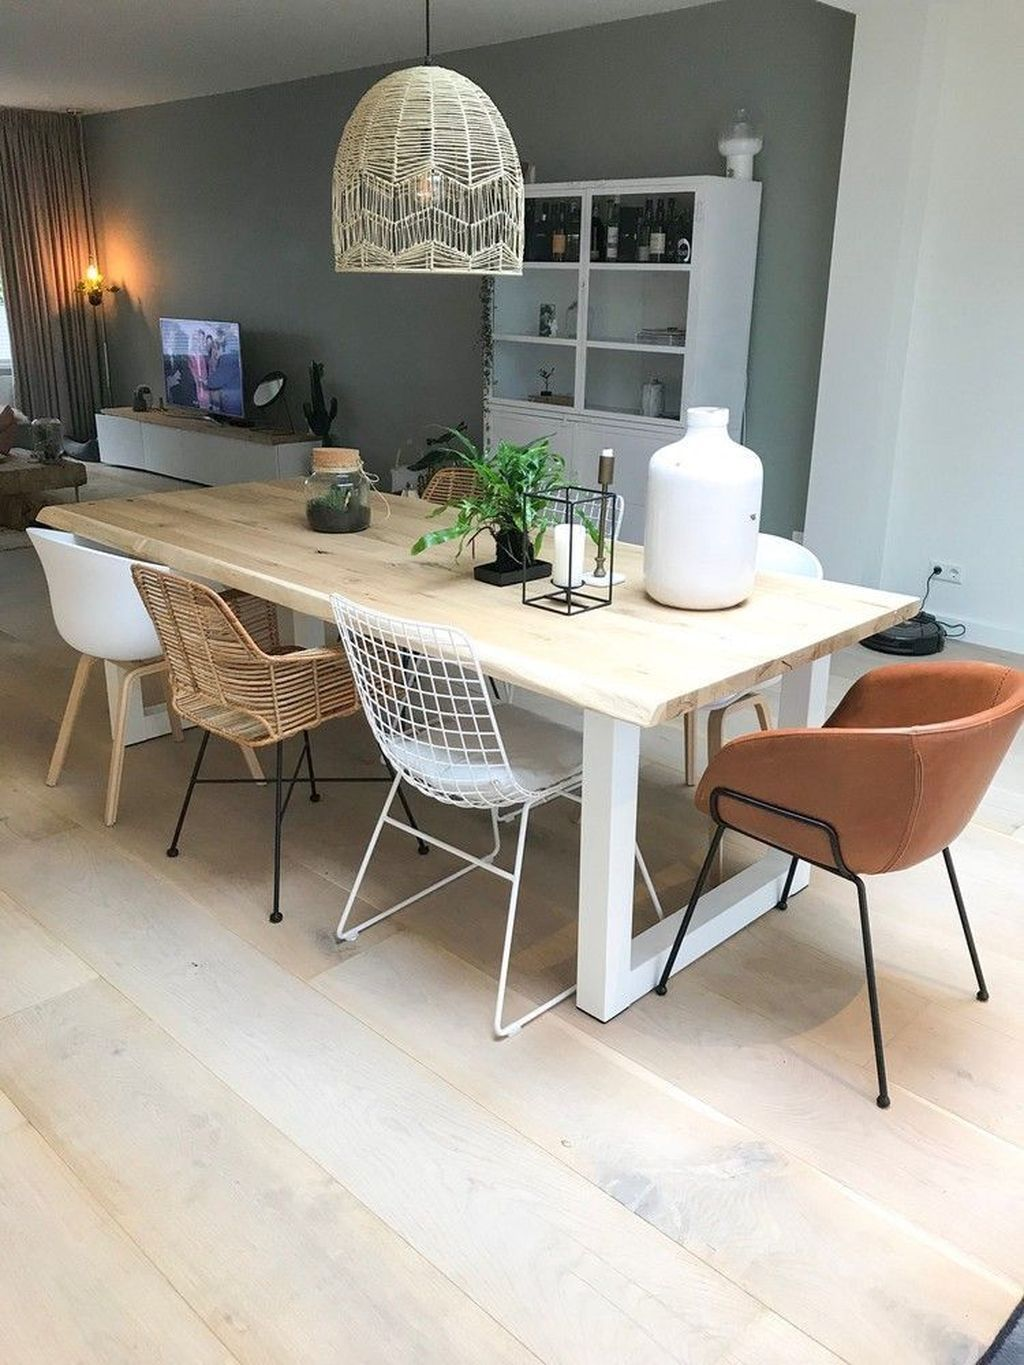 30 Stunning Small Dining Lighting Design Ideas For Stylish Dining Room Dining Room Design Minimalist Dining Room Dining Table Design